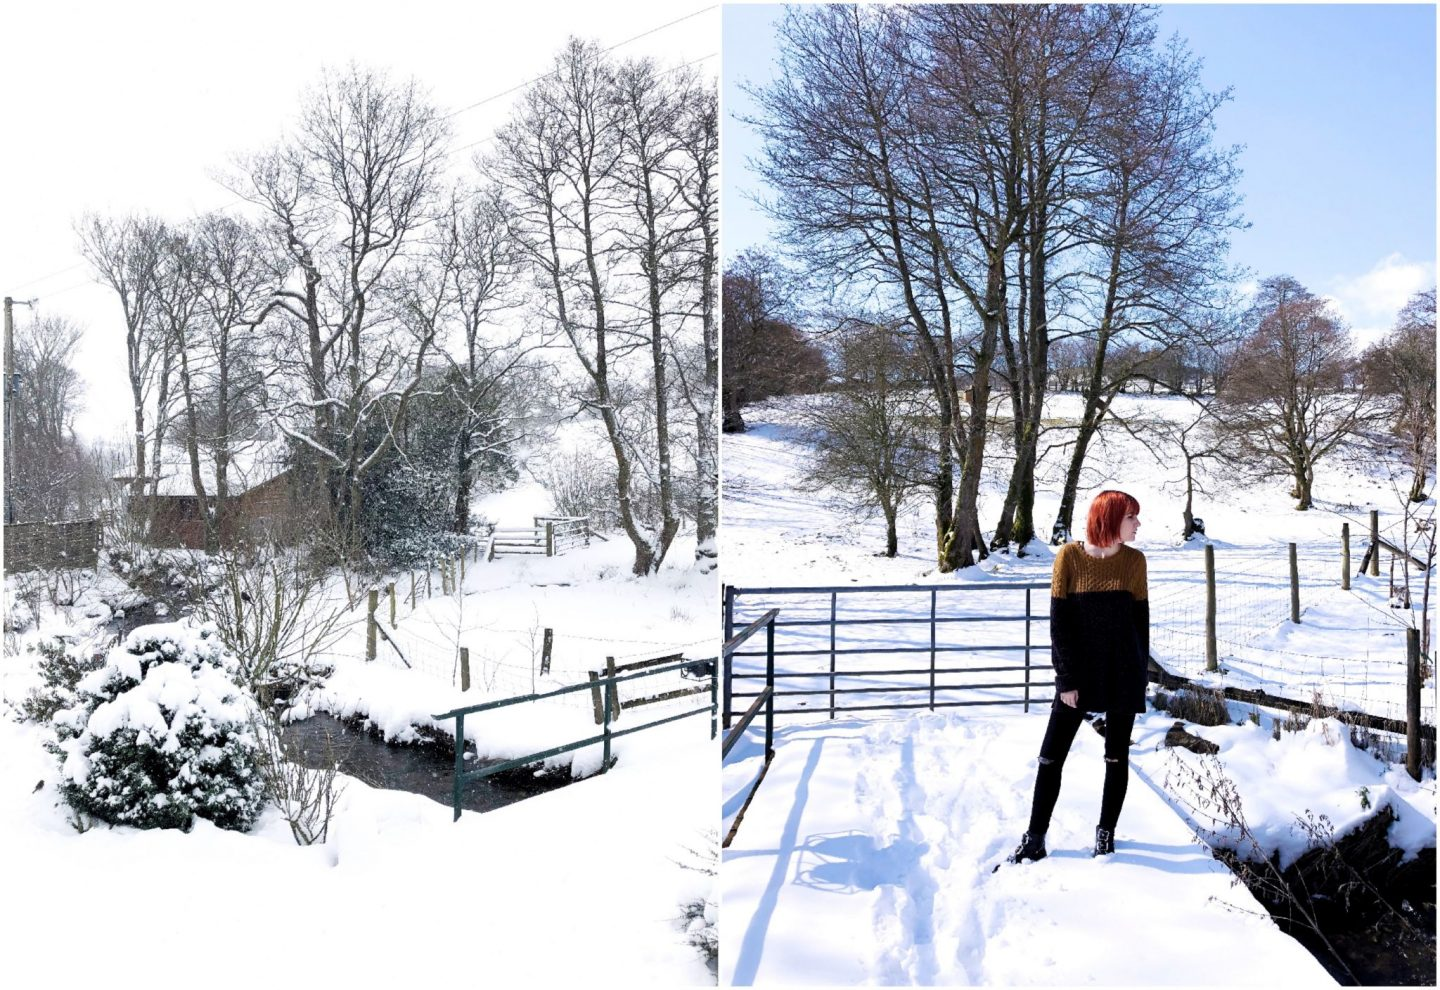 The barn at Glanoer - snow collage